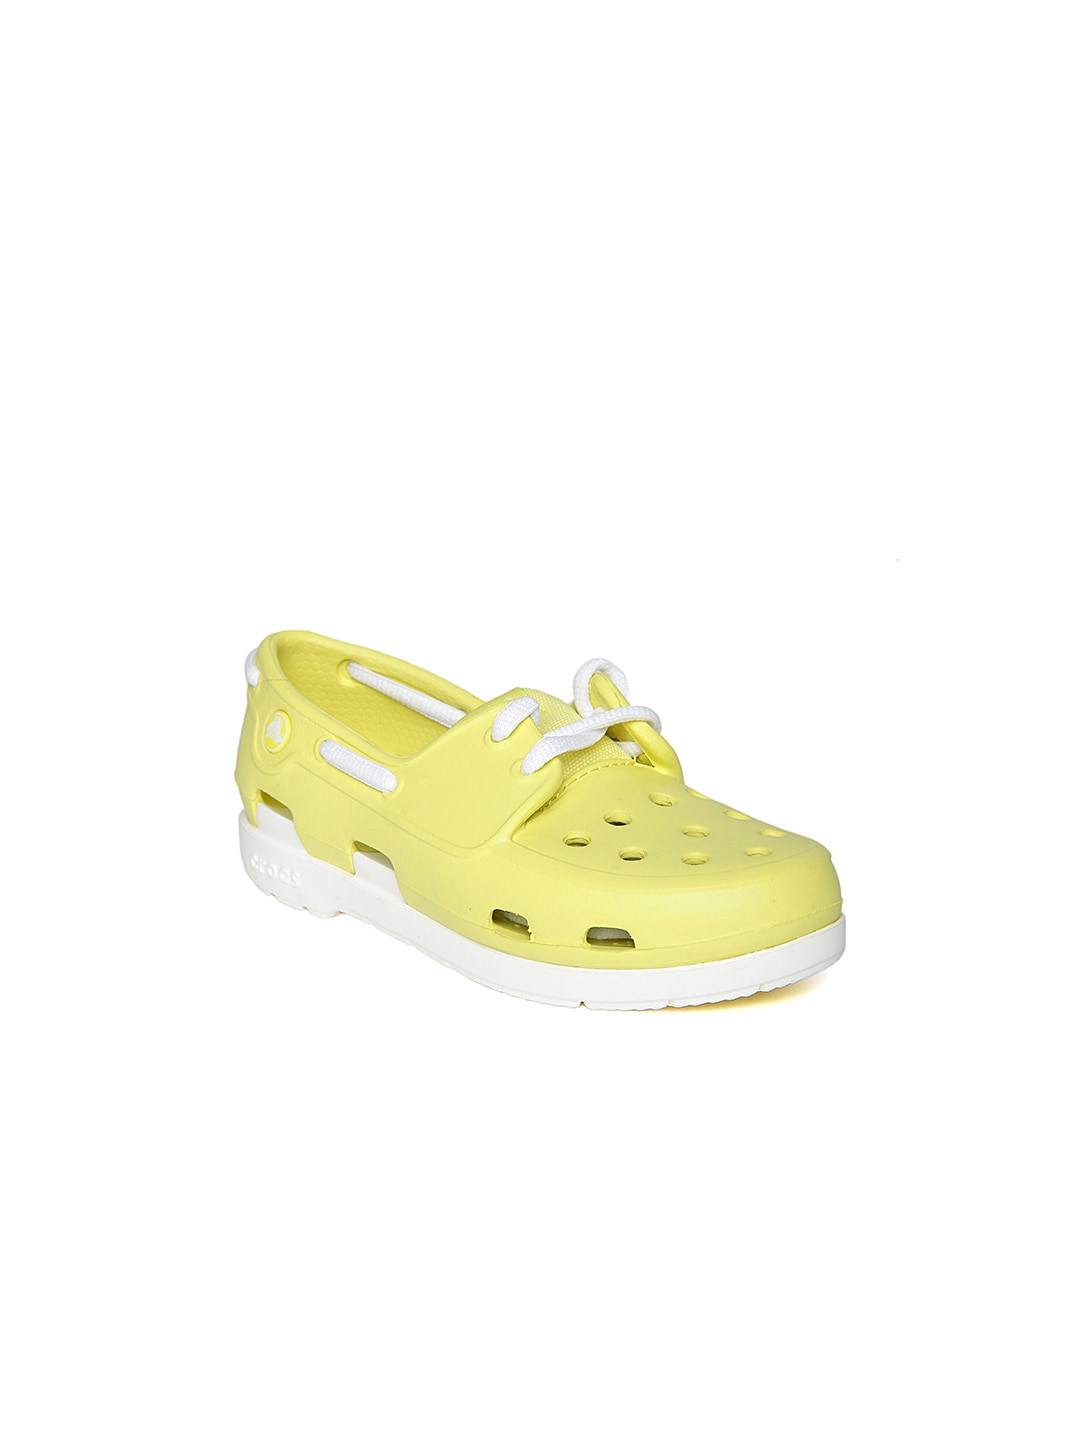 fb9b456ec538 Crocs 15915-3i6-c7 Kids Yellow Boat Shoes - Best Price in India ...